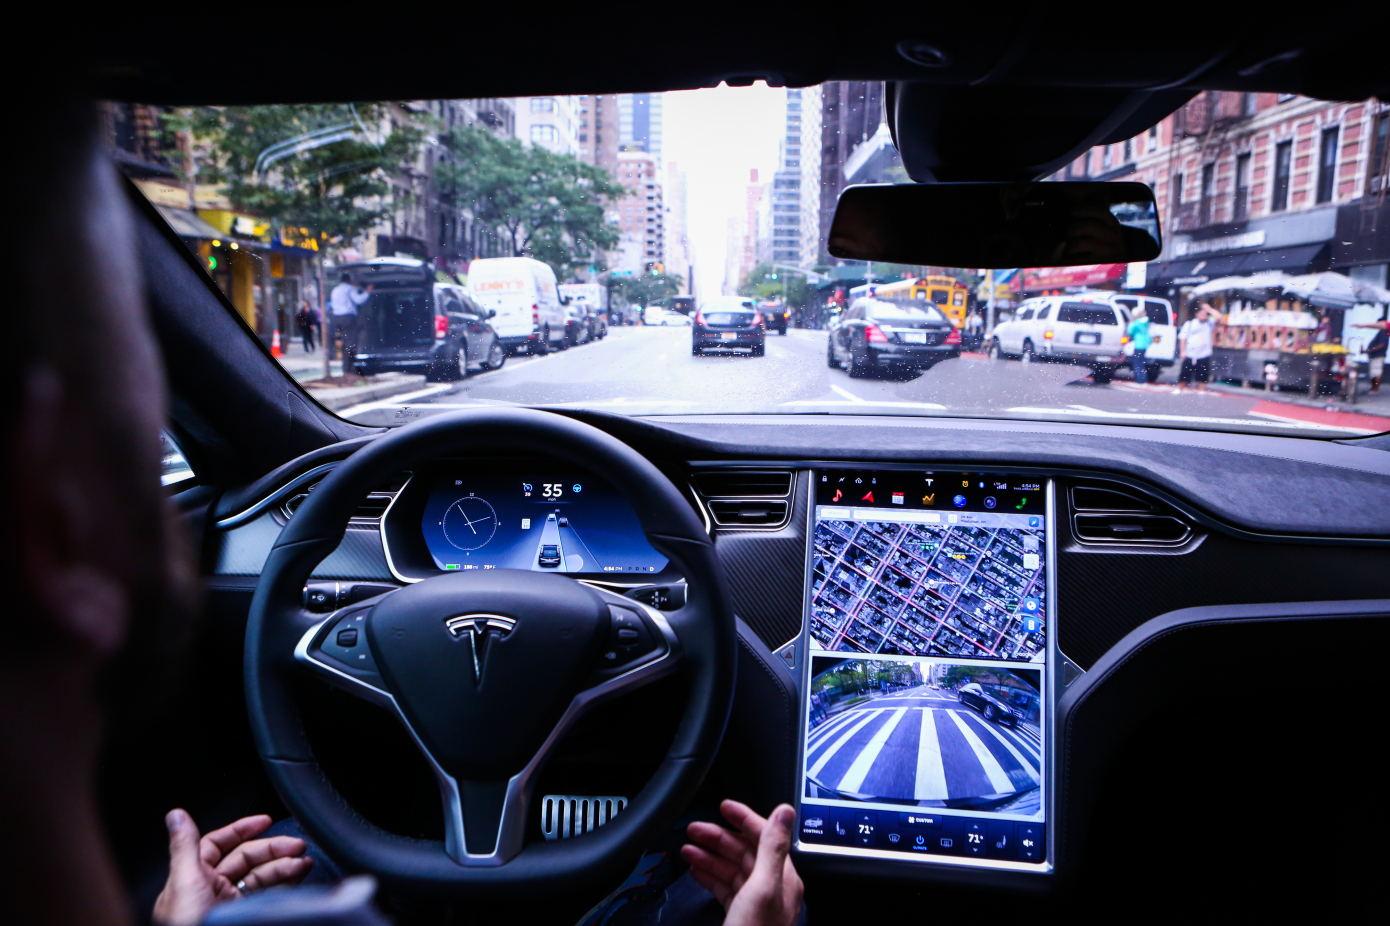 Tesla Has Increased The Price Of 'Full Self-Driving' To $10,000